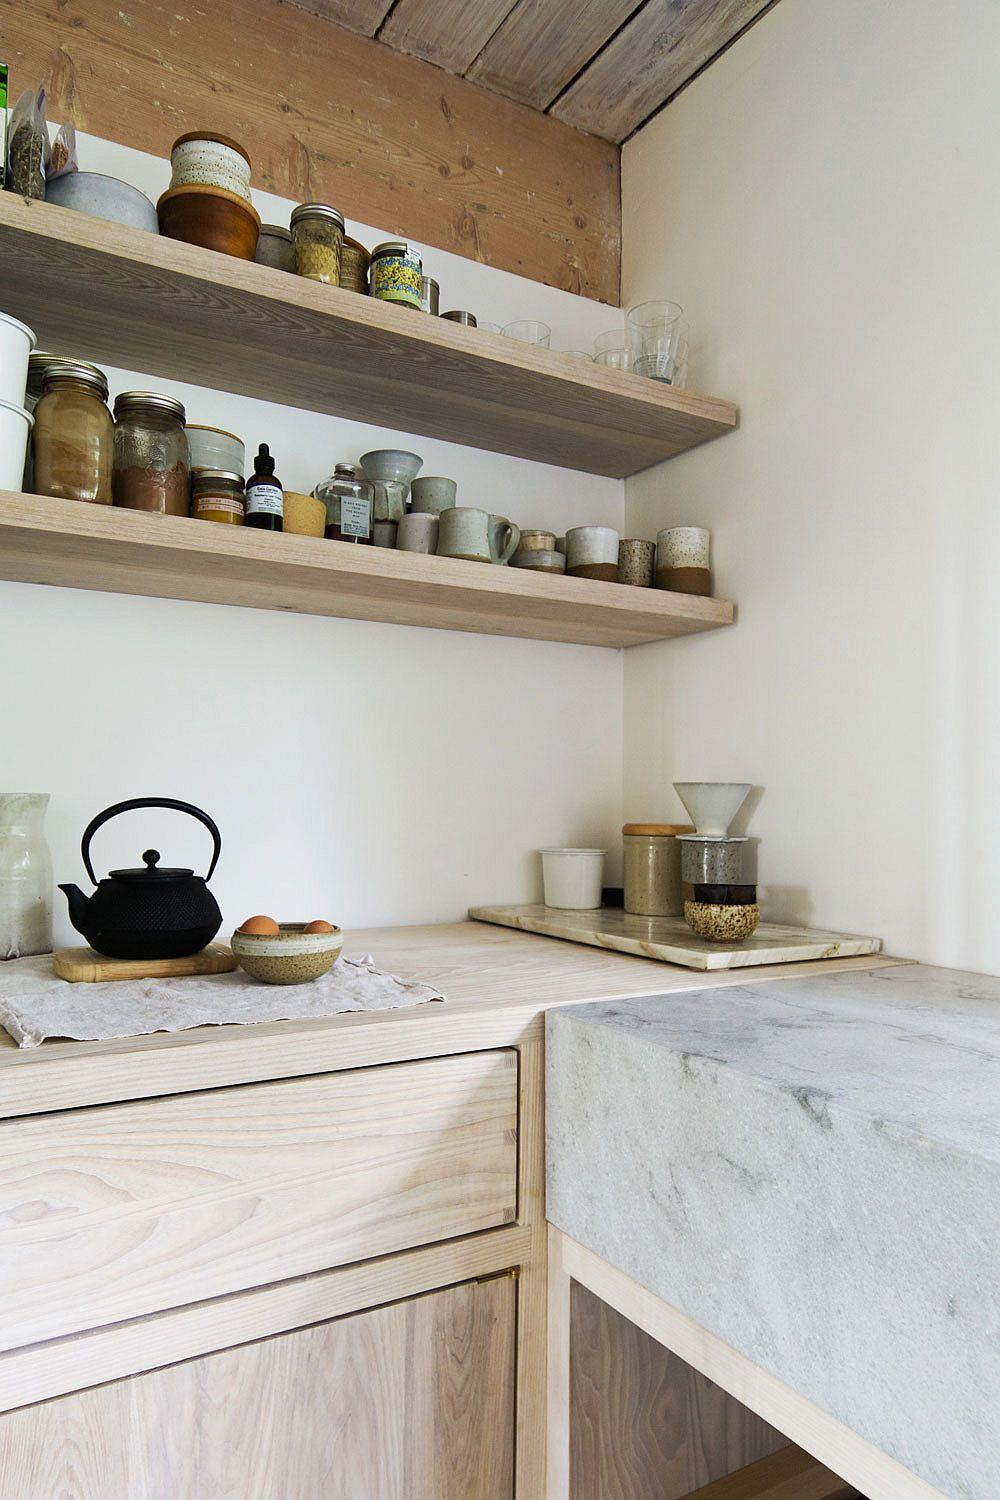 Open kitchen shelves make complete use of vertical space on offer